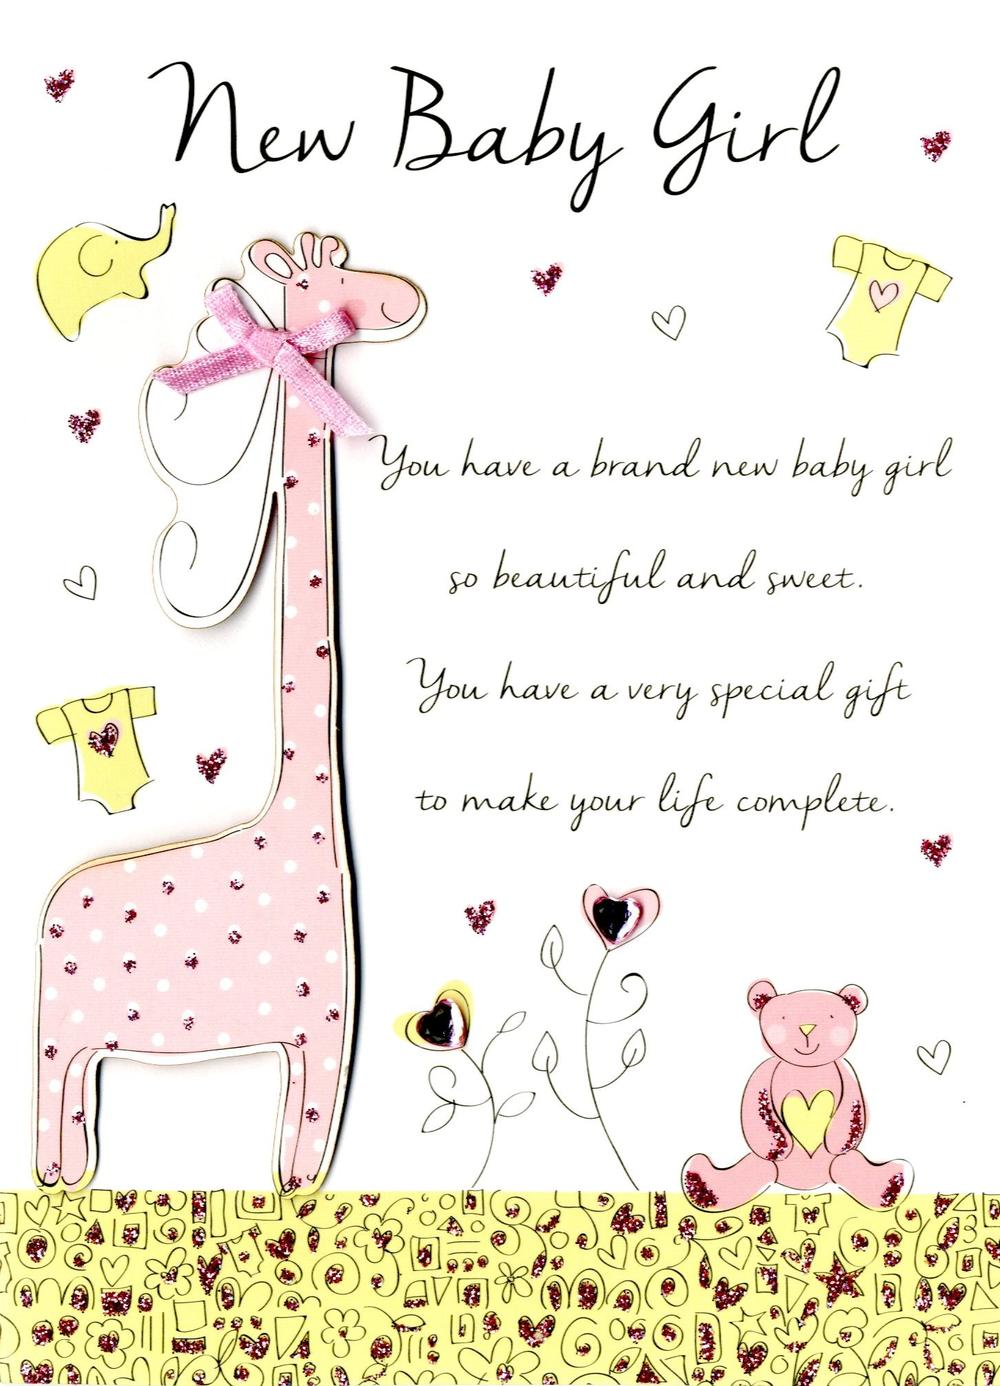 New Baby Girl Congratulations Greeting Card | Cards | Love Kates